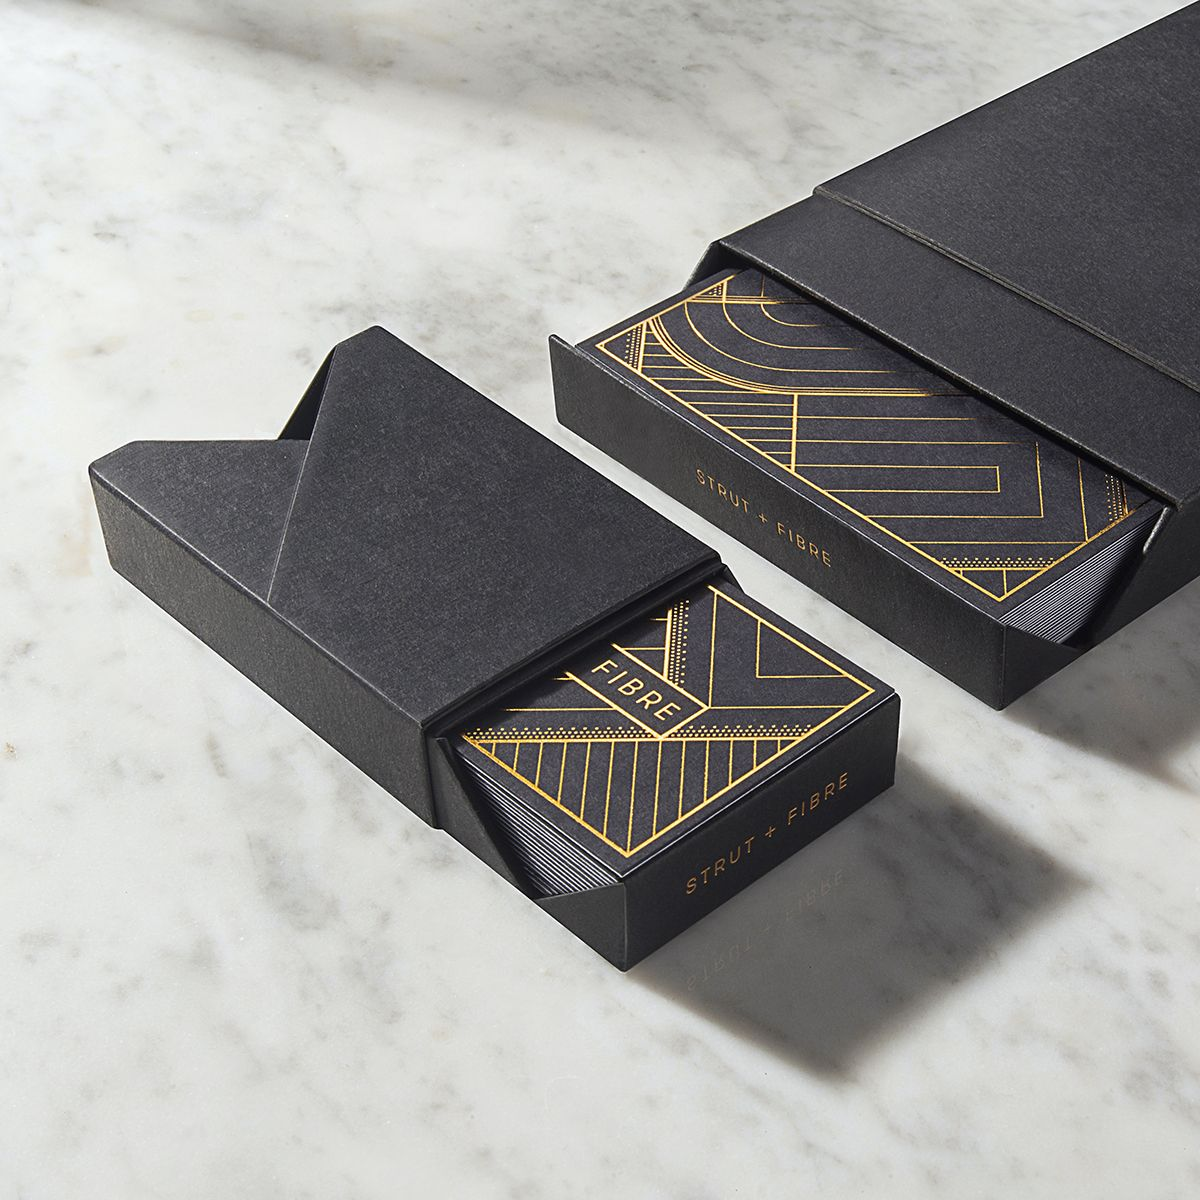 Bespoke Strut and Fibre presentation boxes for your business cards ...